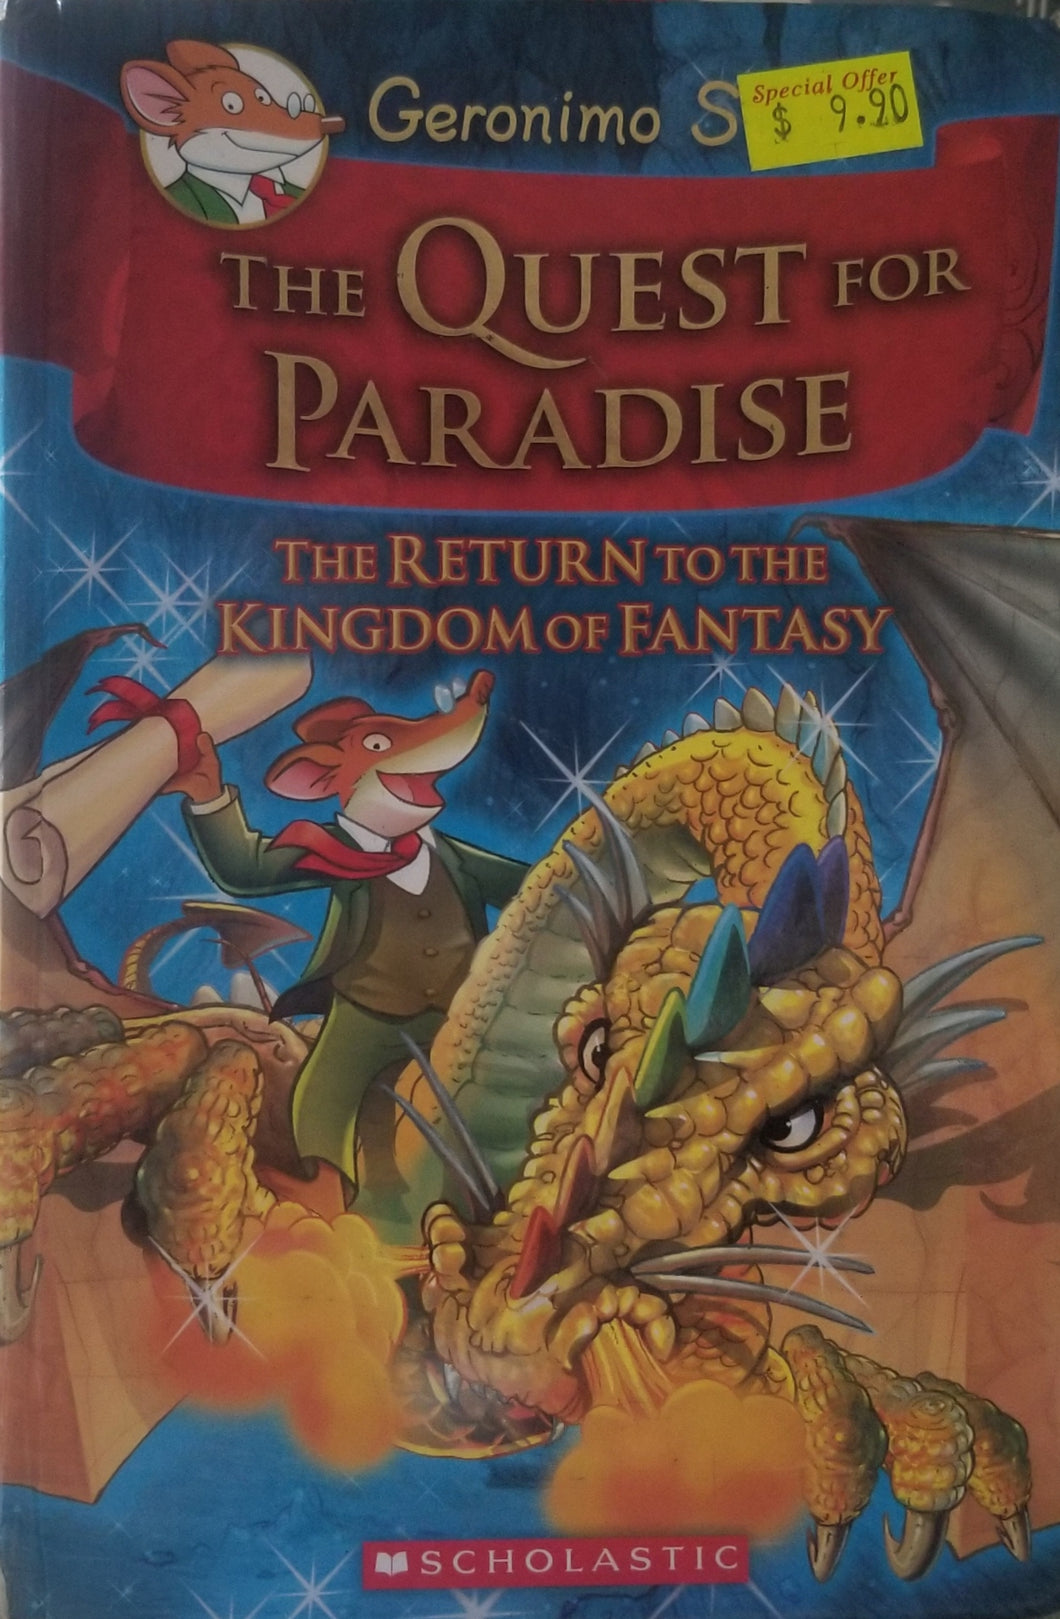 Geronimo Stilton and the Kingdom of Fantasy: (Book2) Quest for Paradise